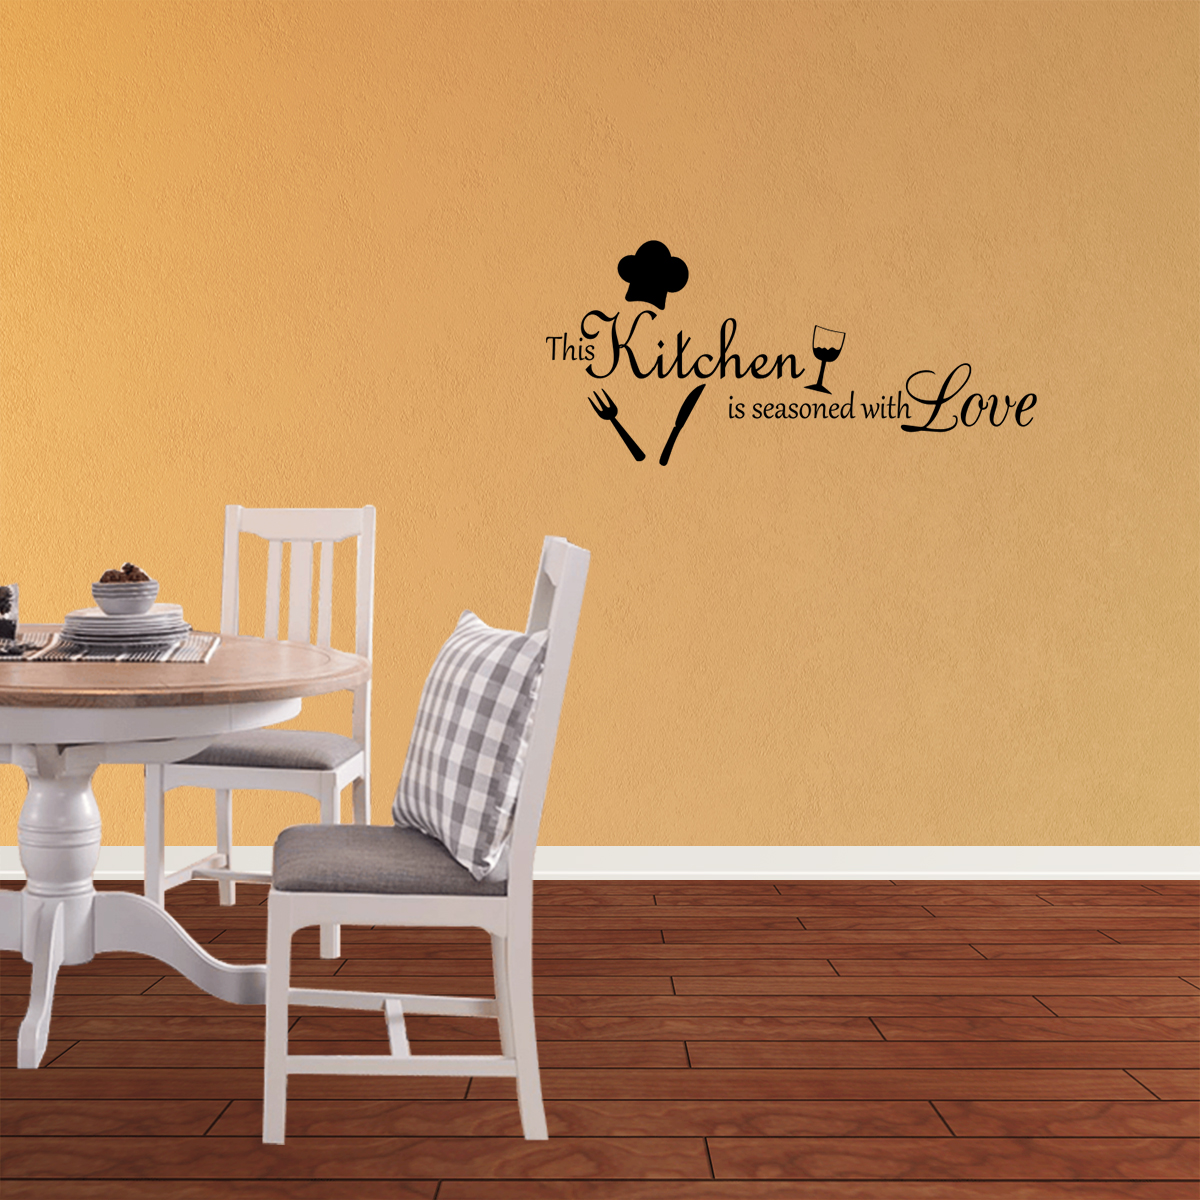 This Kitchen Is Seasoned With Love Vinyl Wall Decal Quotes Wall Stickers Kitchen Decals Home Decor Decals J189